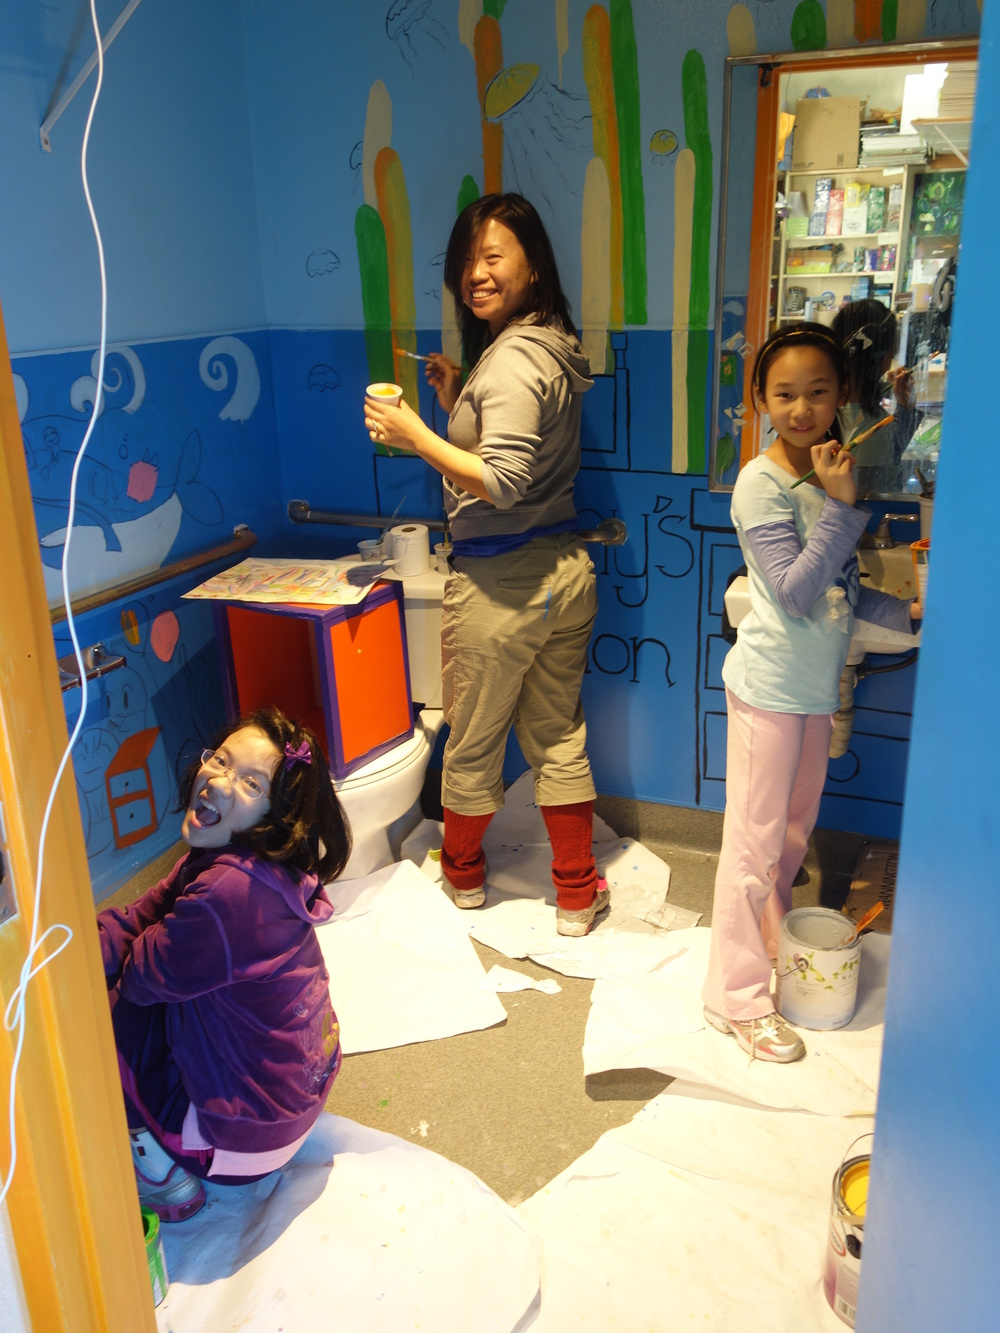 Landy, Kaelynn, and Hongyun repainting the bathroom at Hongyun Art